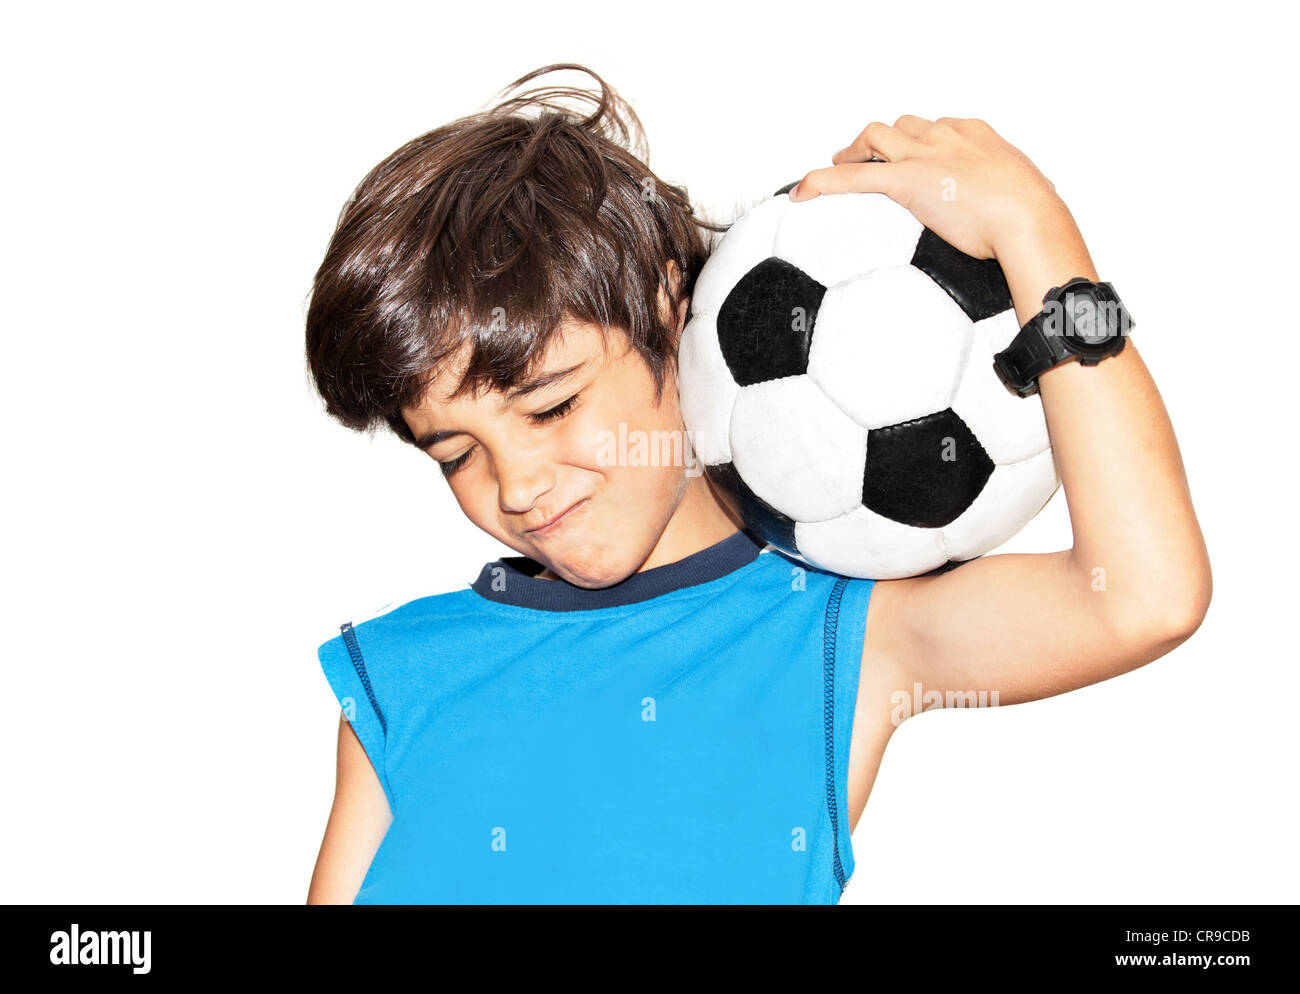 Football player celebrating victory, cute little boy playing, kid enjoying team game, teen holding catching ball, - Stock Image